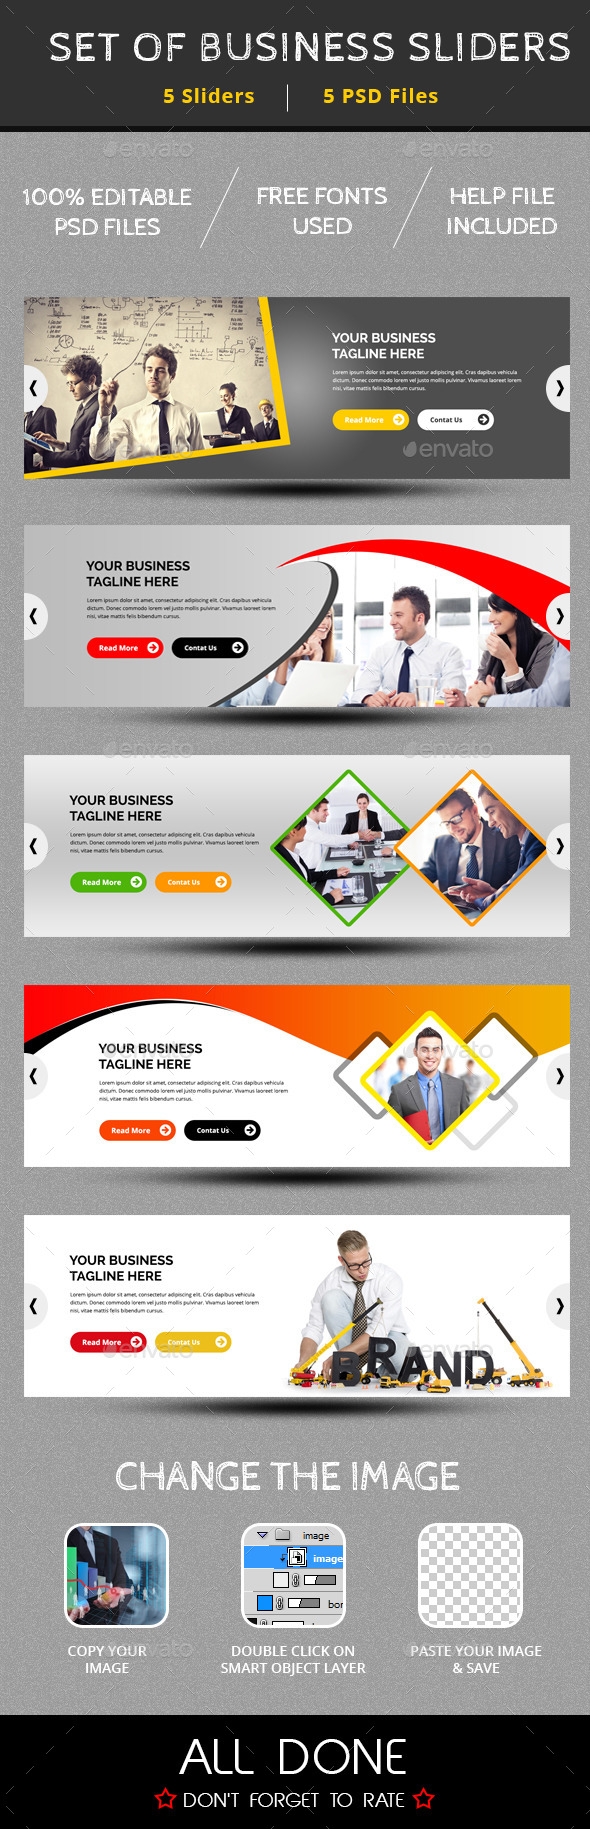 Set Of 5 Business Sliders - Sliders & Features Web Elements